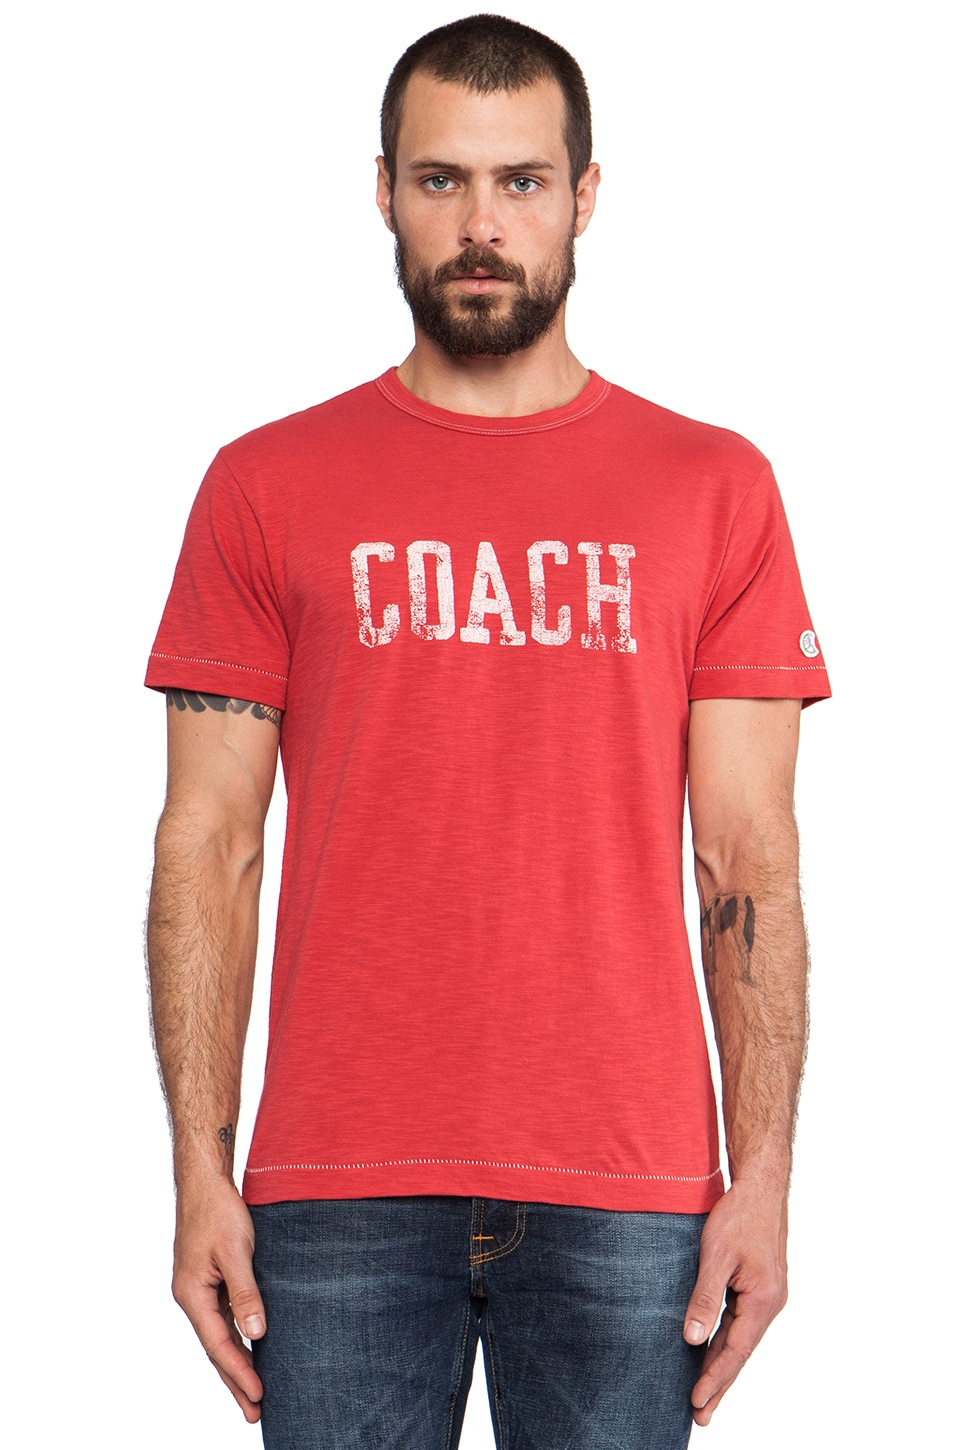 TODD SNYDER + Champion Coach Graphic Tee in Faded Red